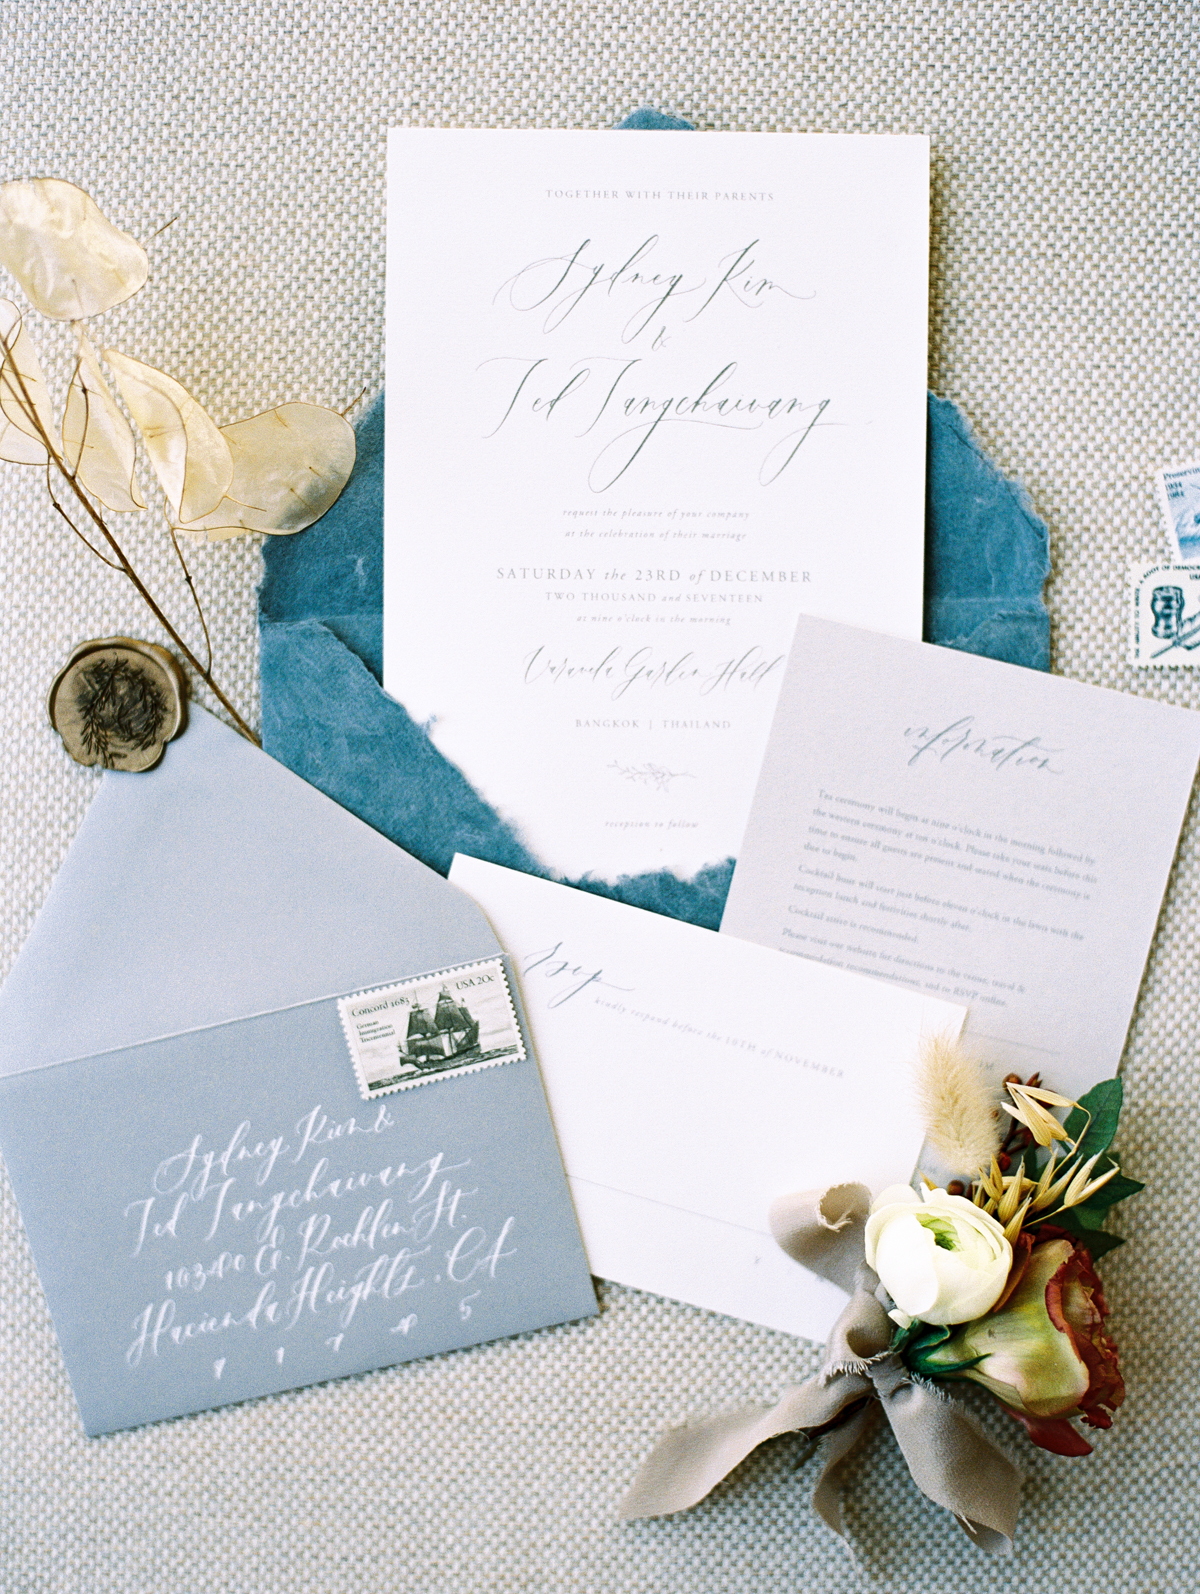 custom invitation suite with floral details